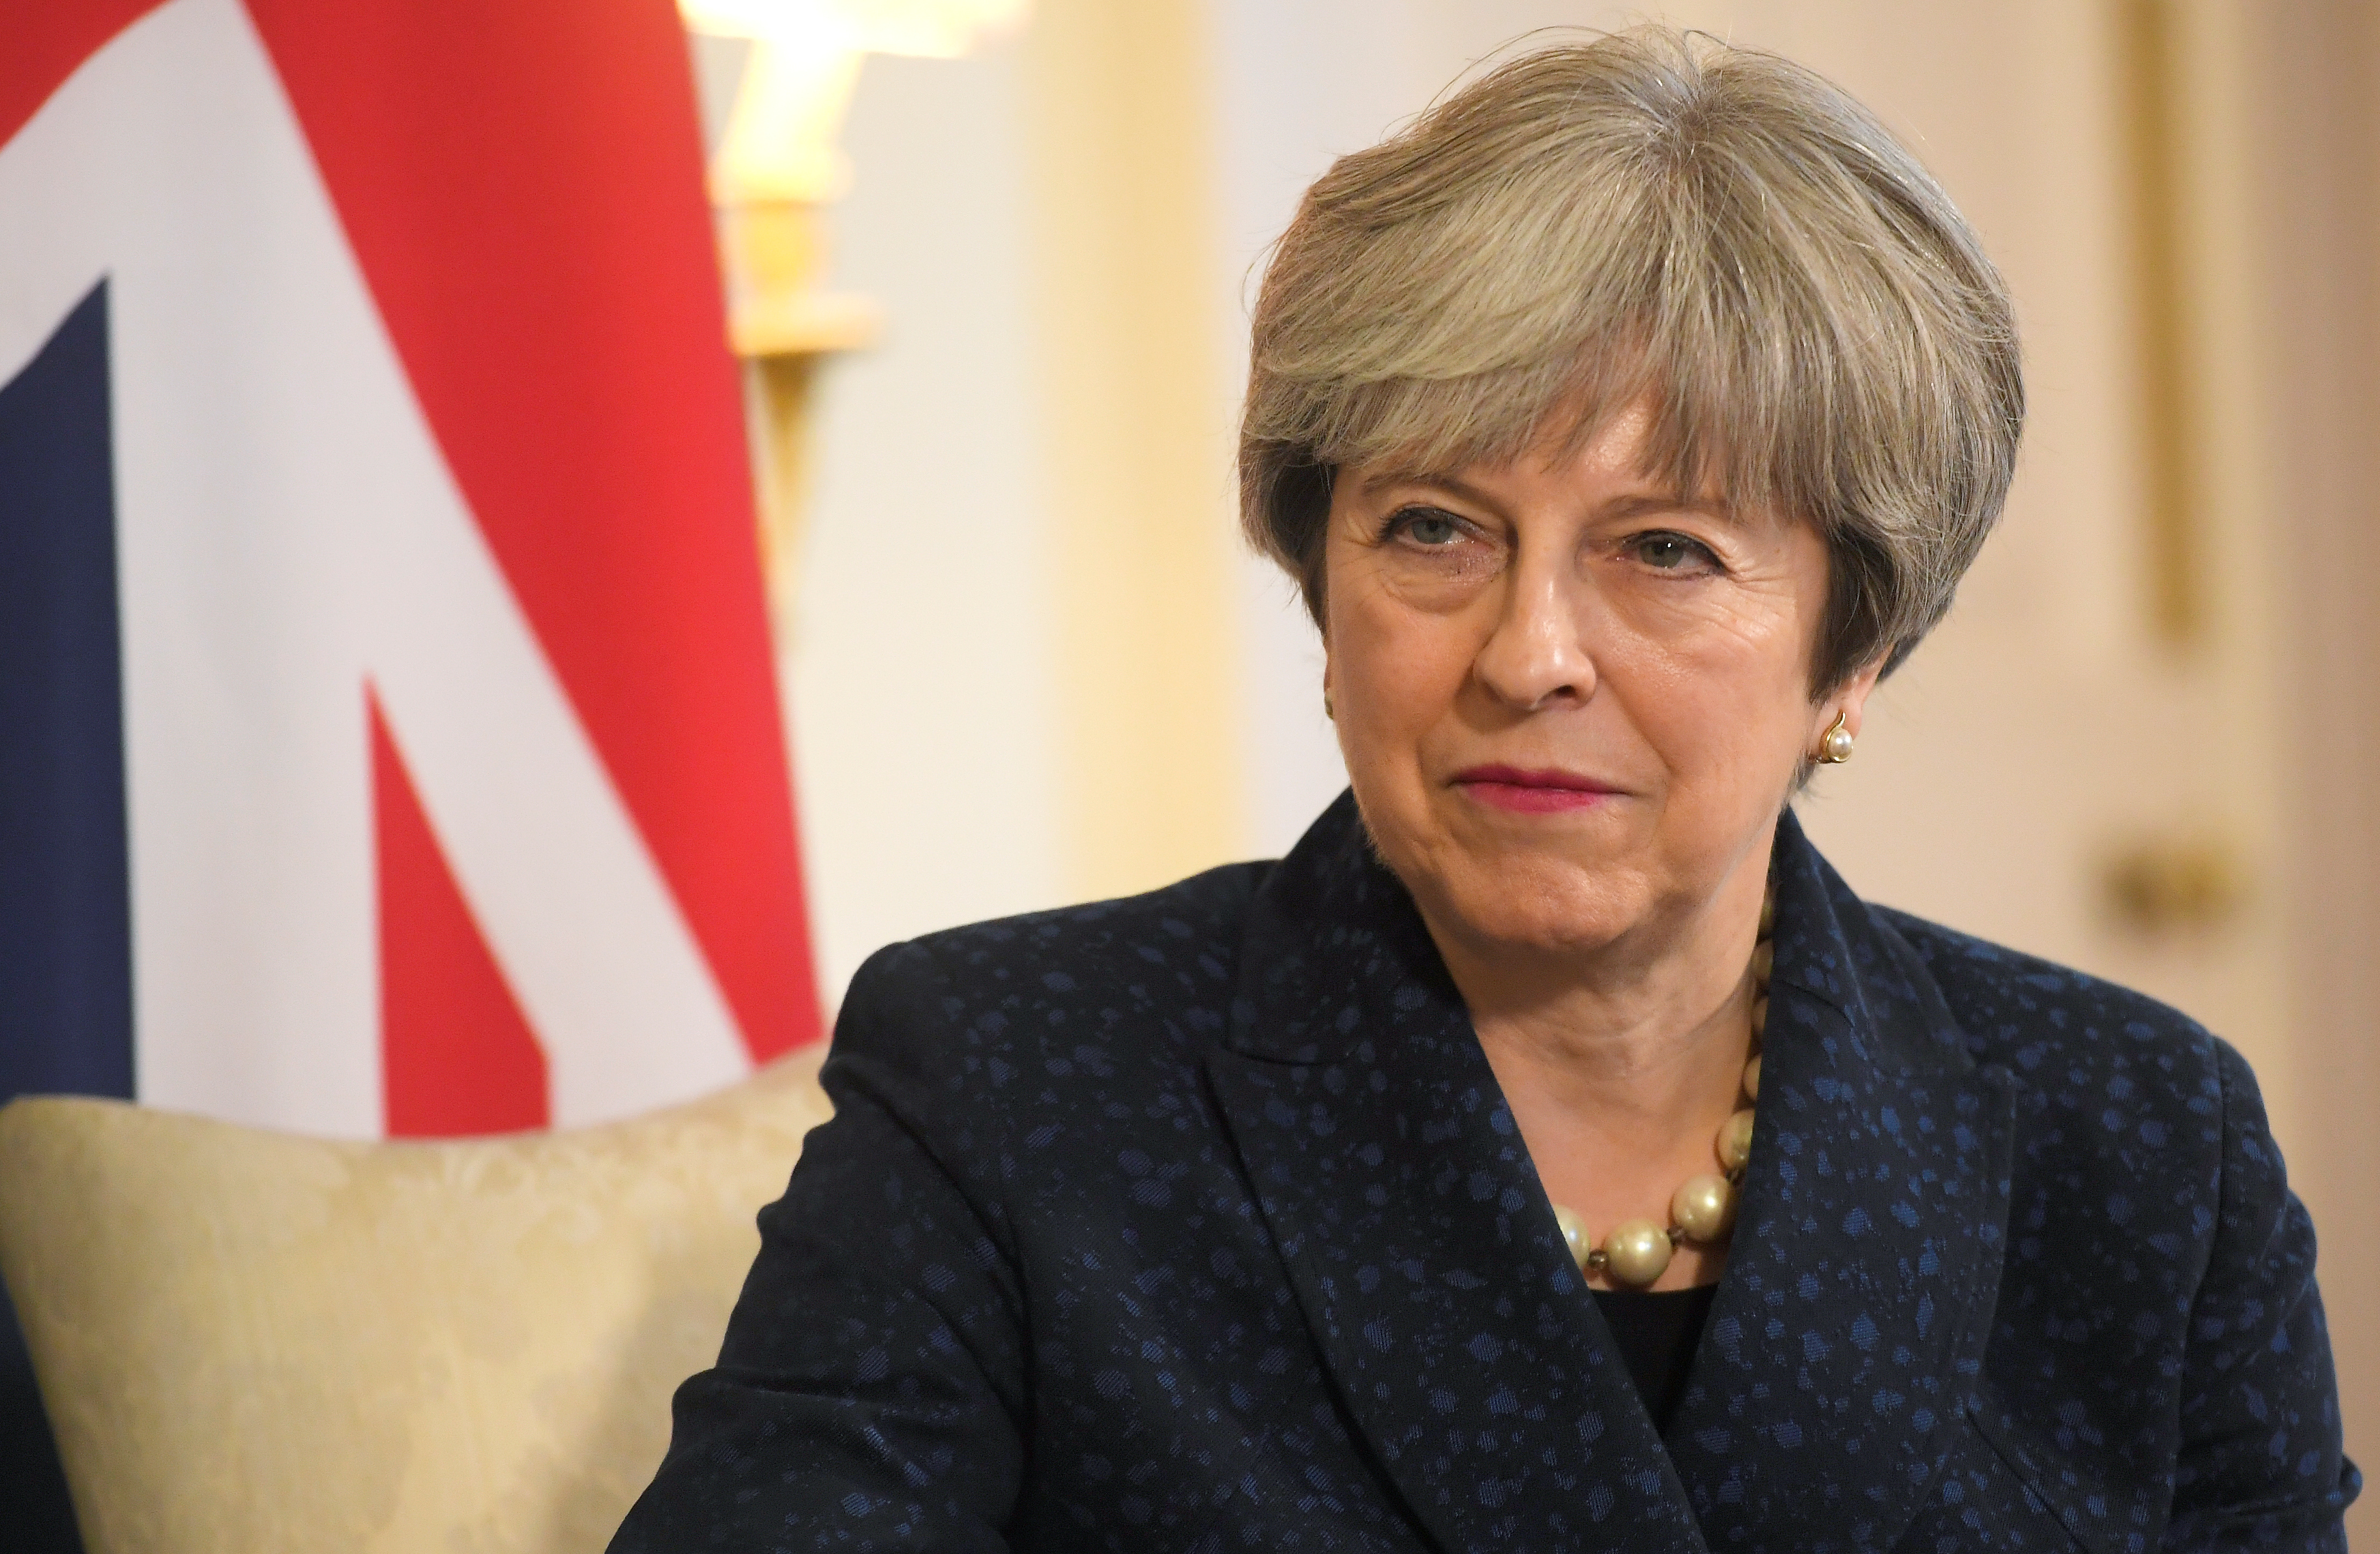 Britain's Prime Minister Theresa May meets the Prime Minister of Bulgaria, Boyko Borissov, at 10 Downing Street in London